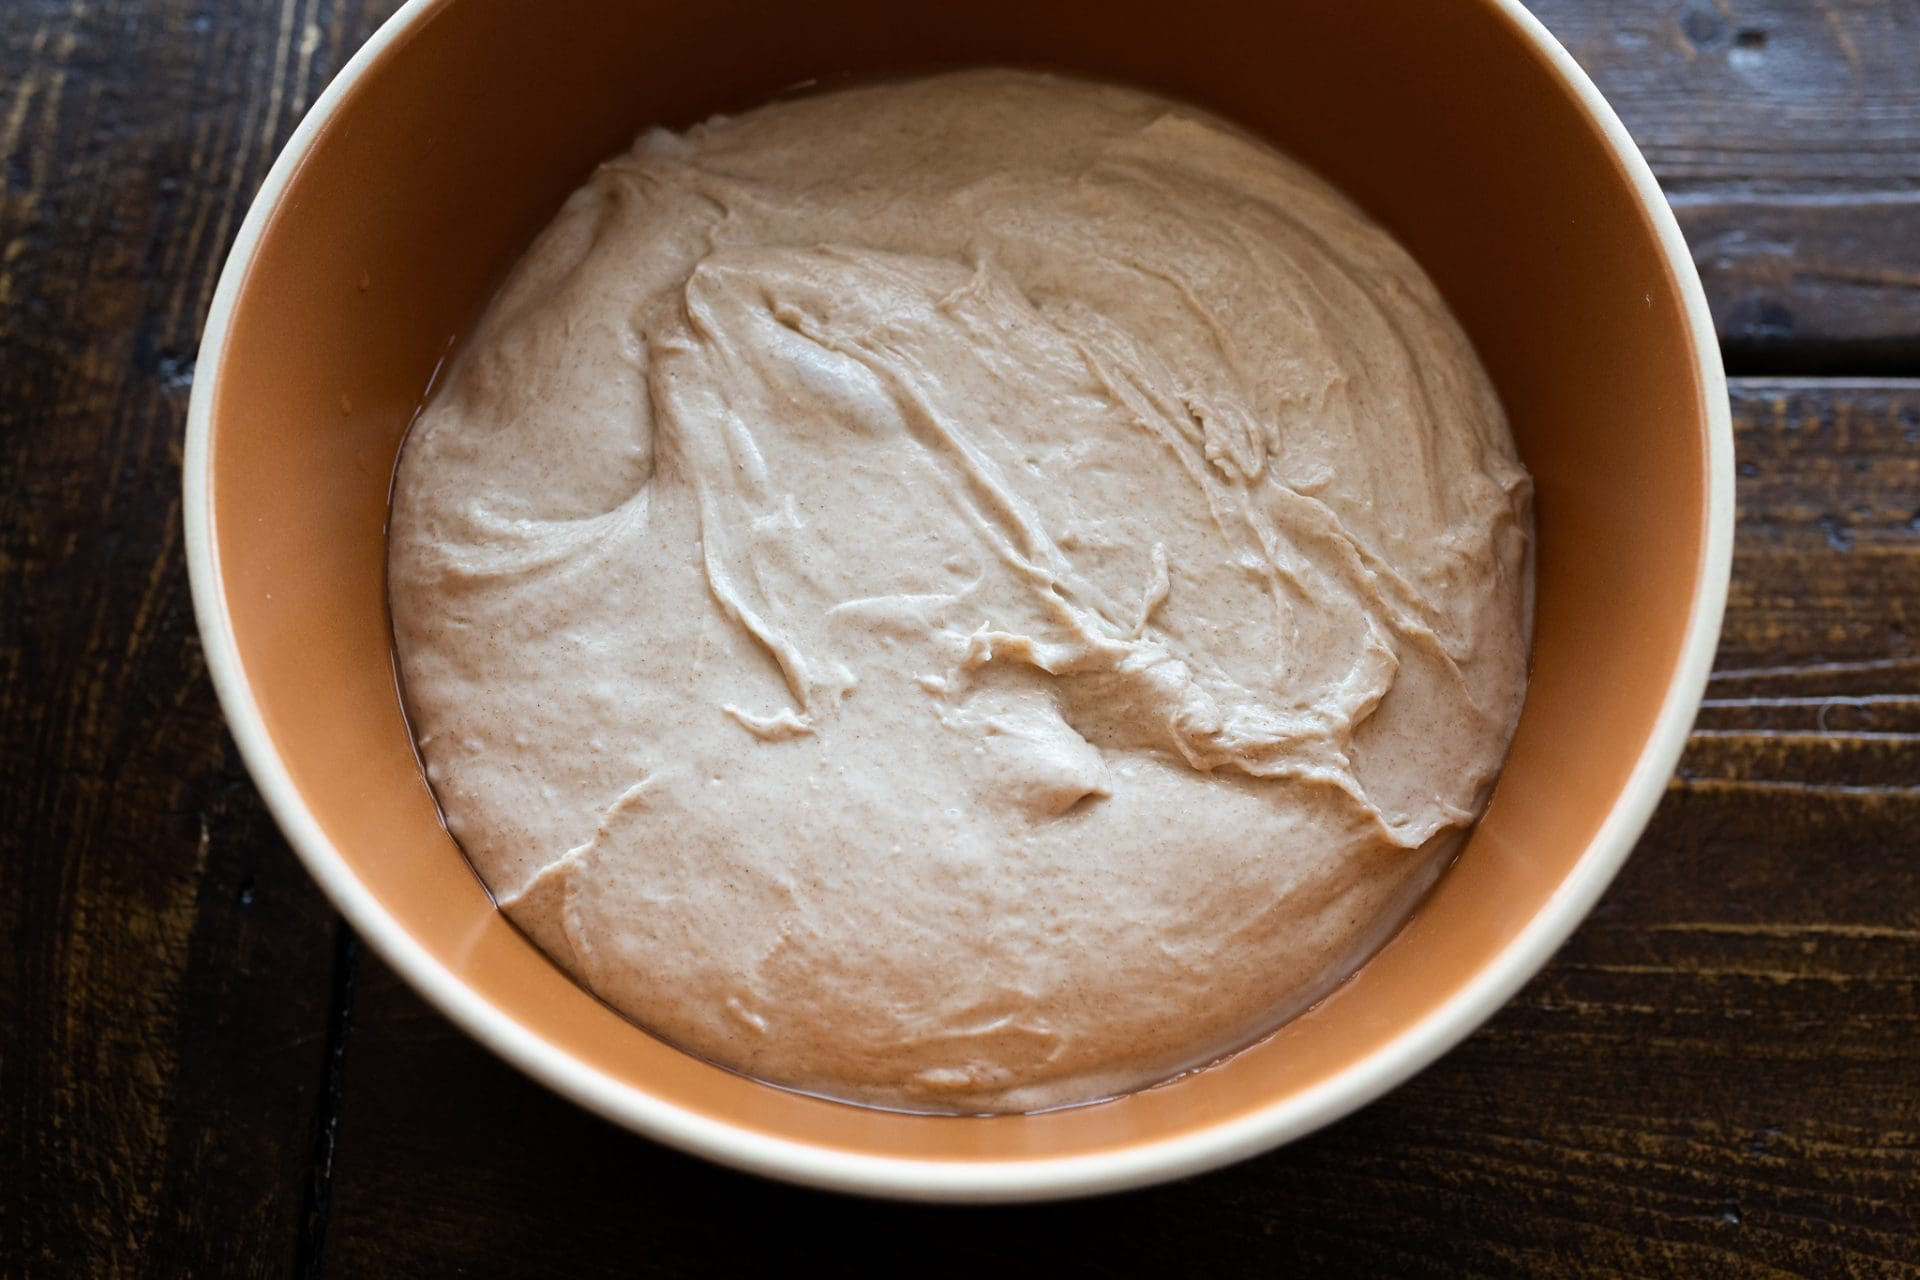 Dough at the end of mixing